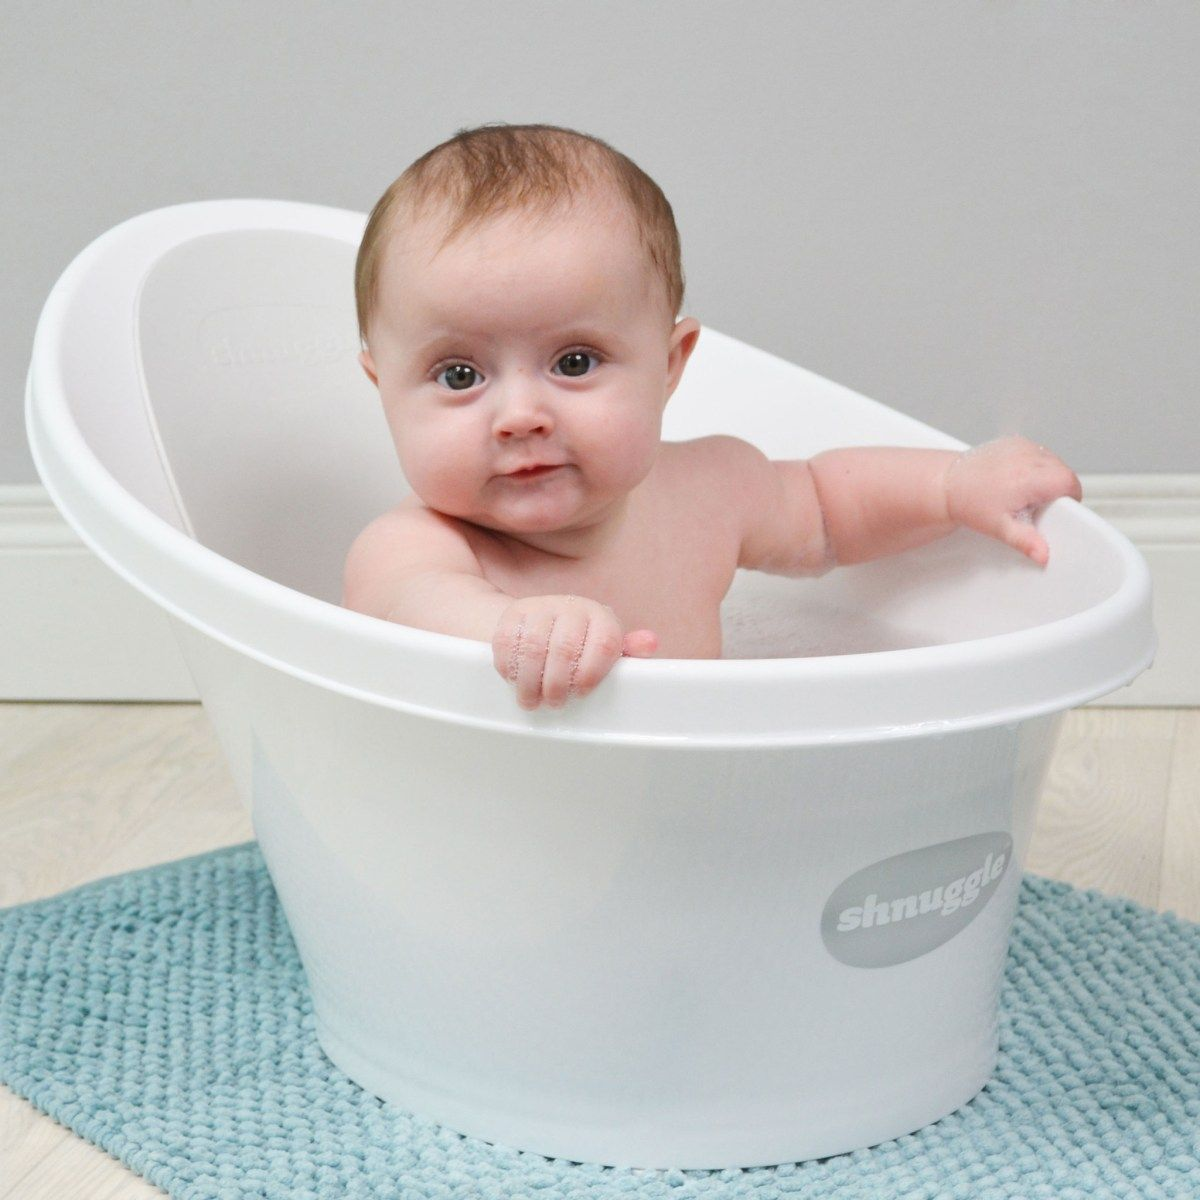 Shnuggle Bath Makes Bathing Baby Easier And Safer (giveaway) | Blog ...